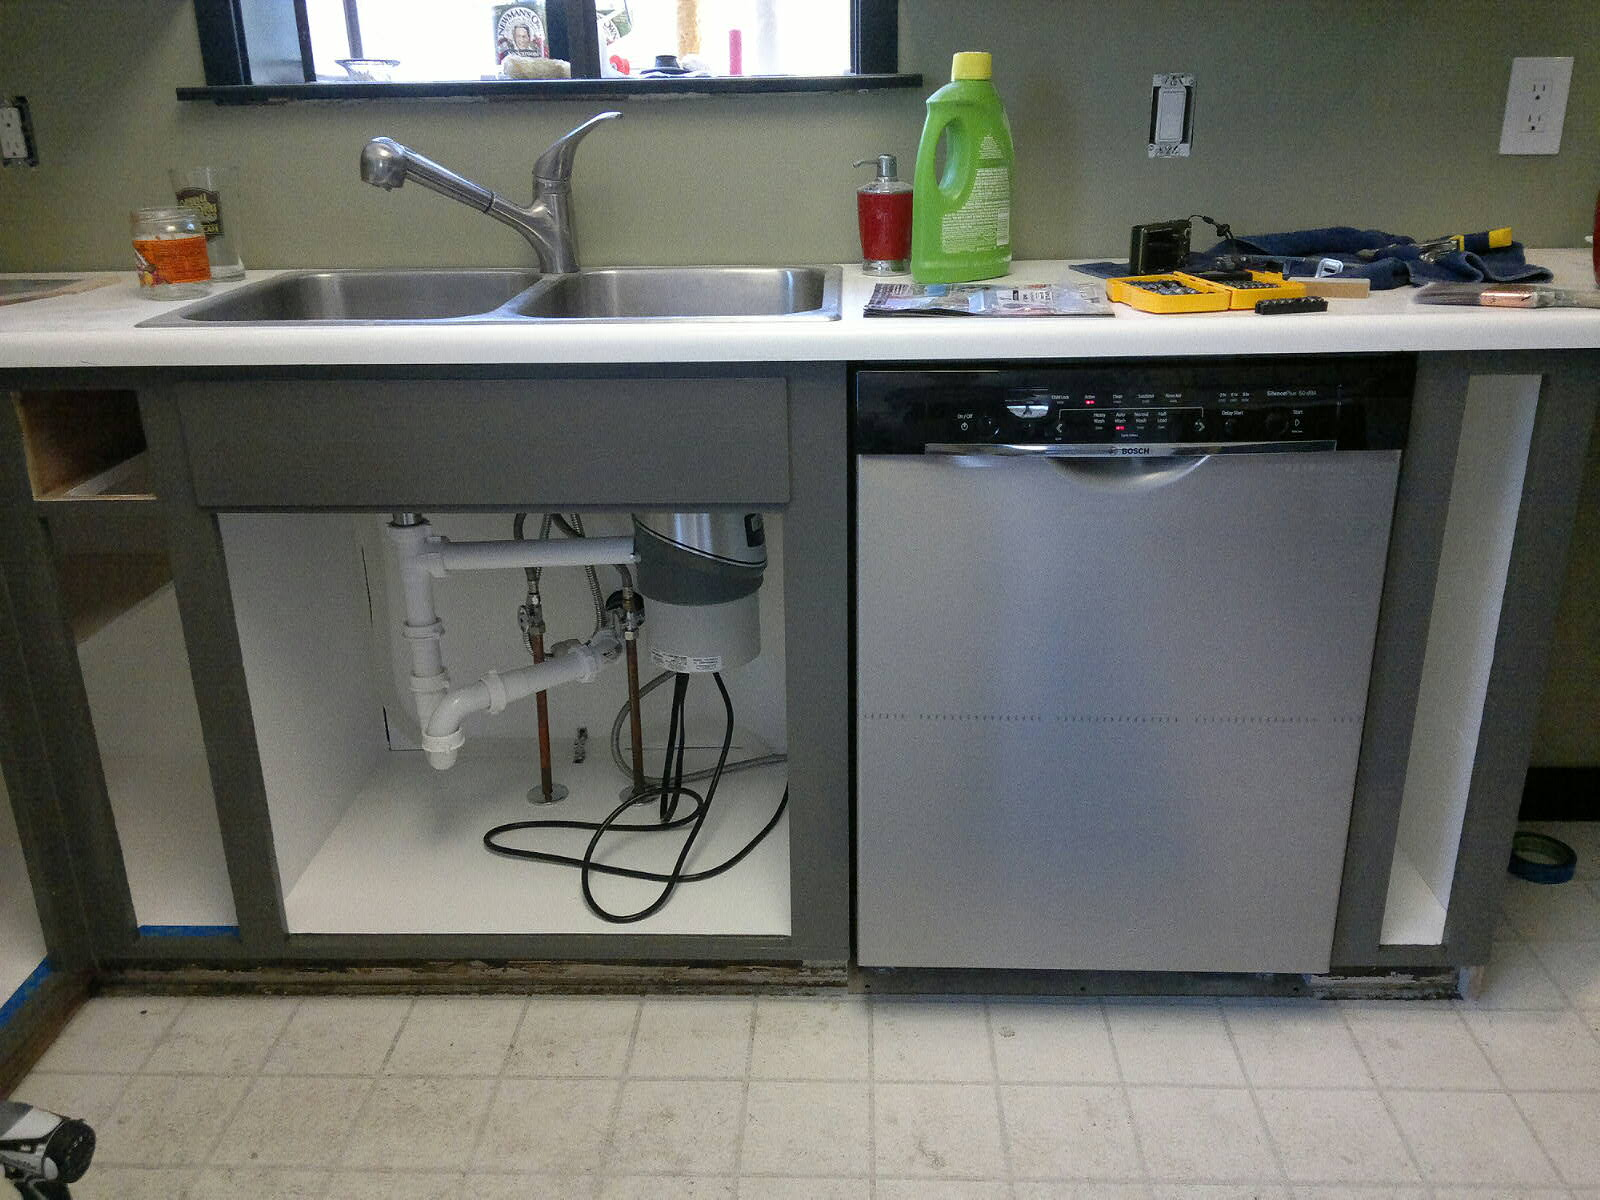 My Stupid House: Installing A Full Size Dishwasher In Old Shallow ...